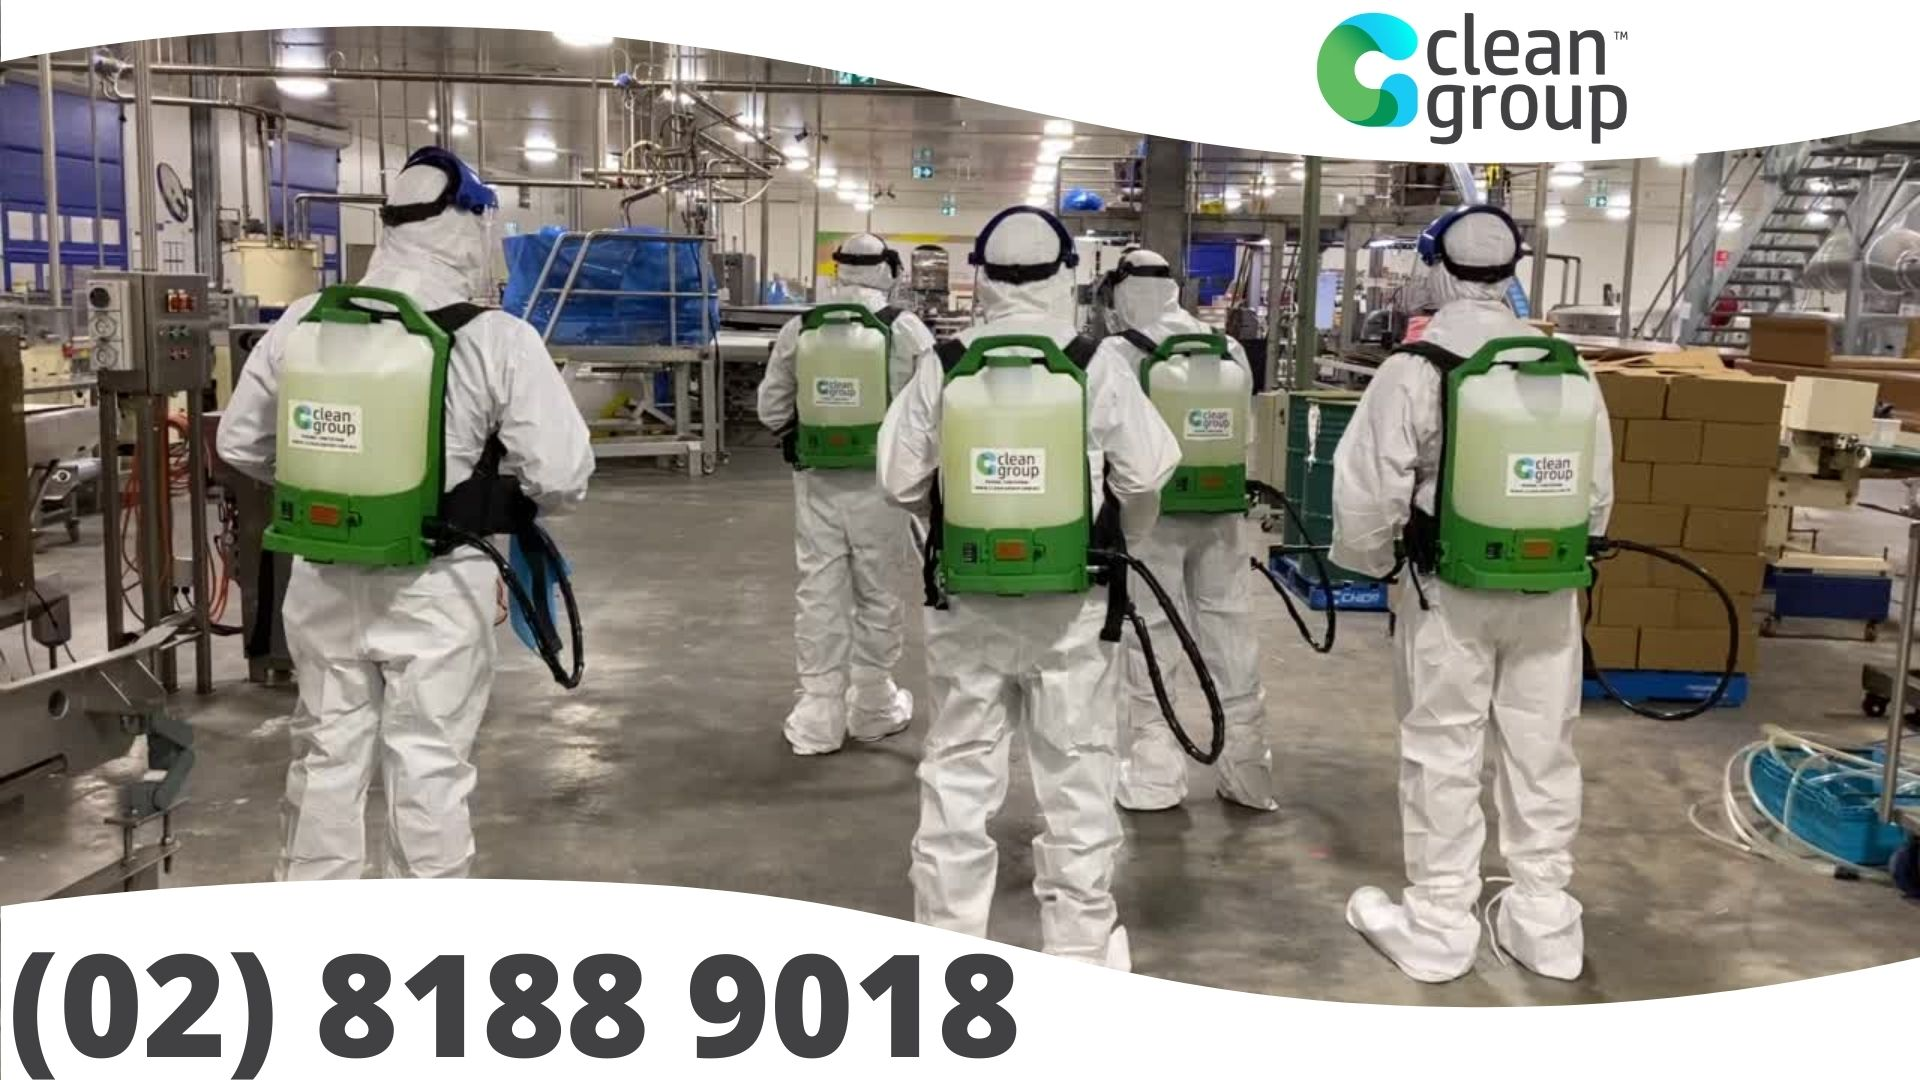 Covid cleaning services in Sydney